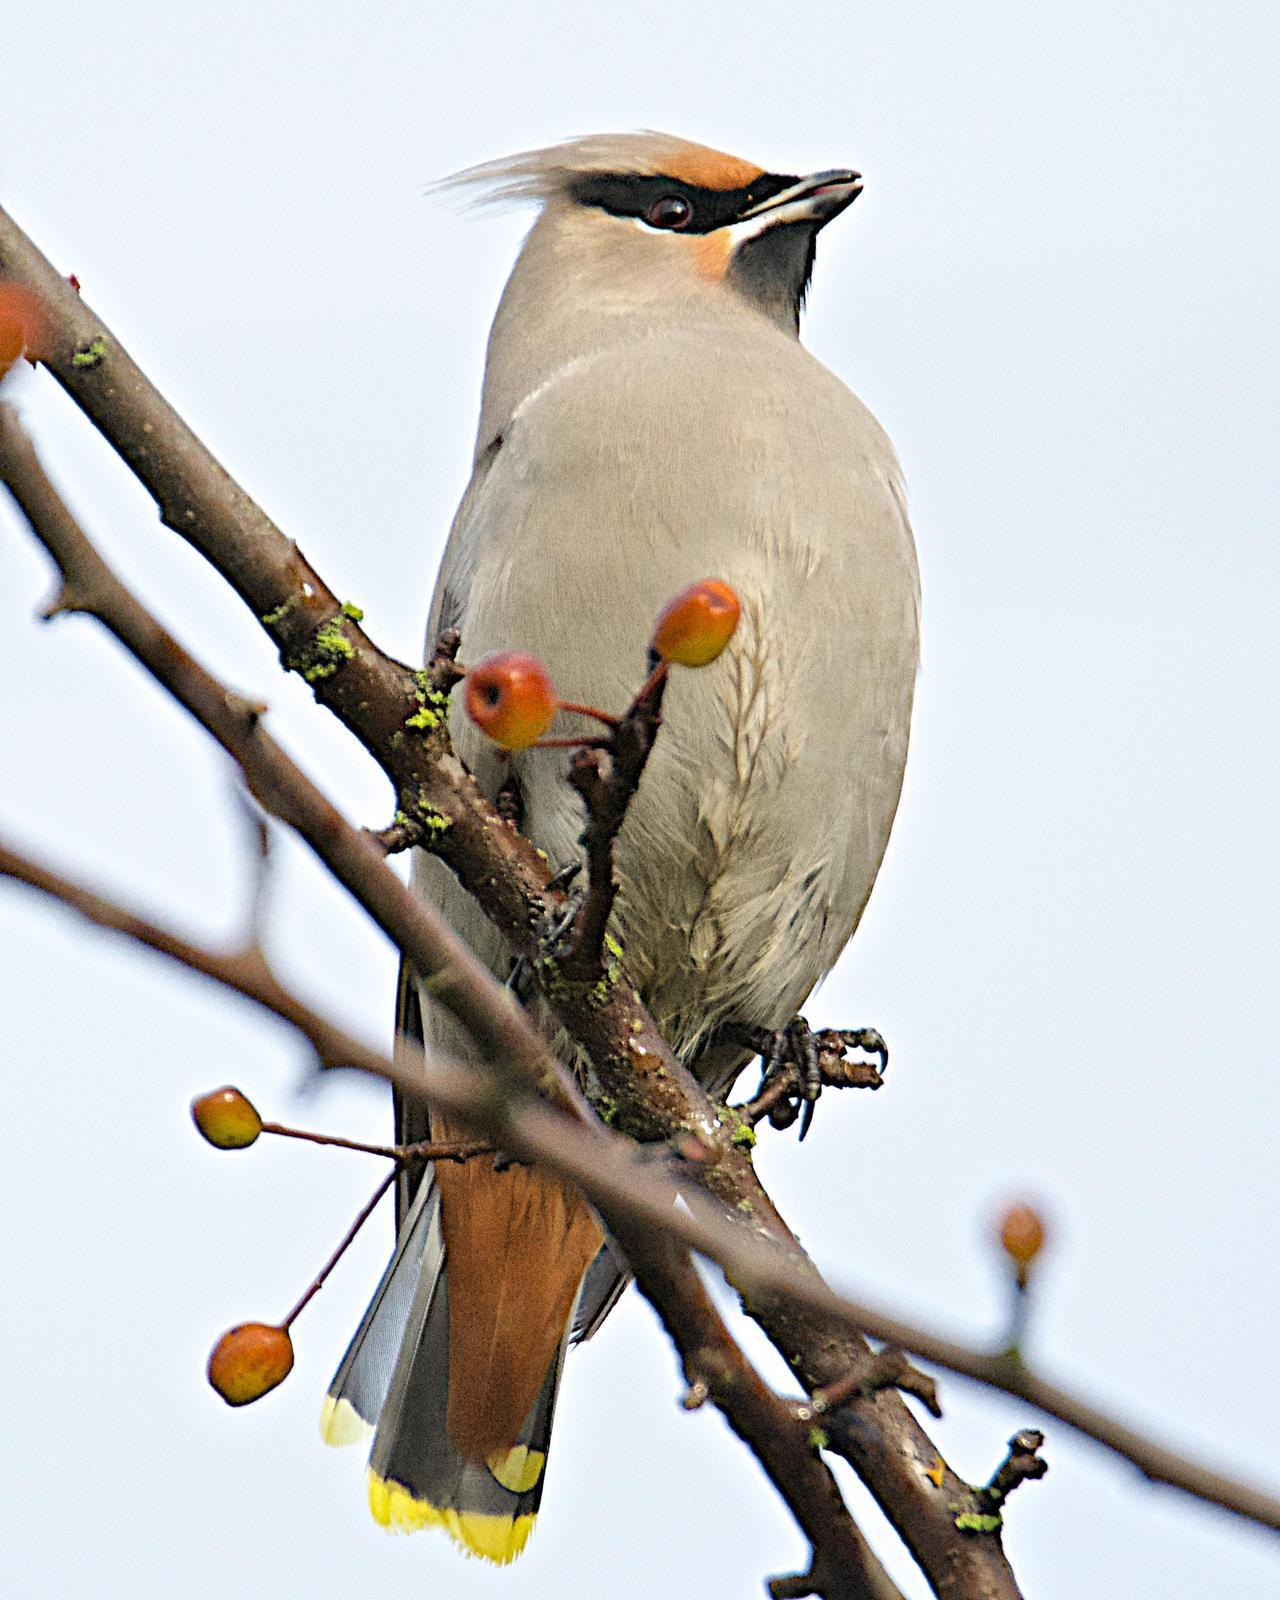 Bohemian Waxwing Photo by Brian Avent